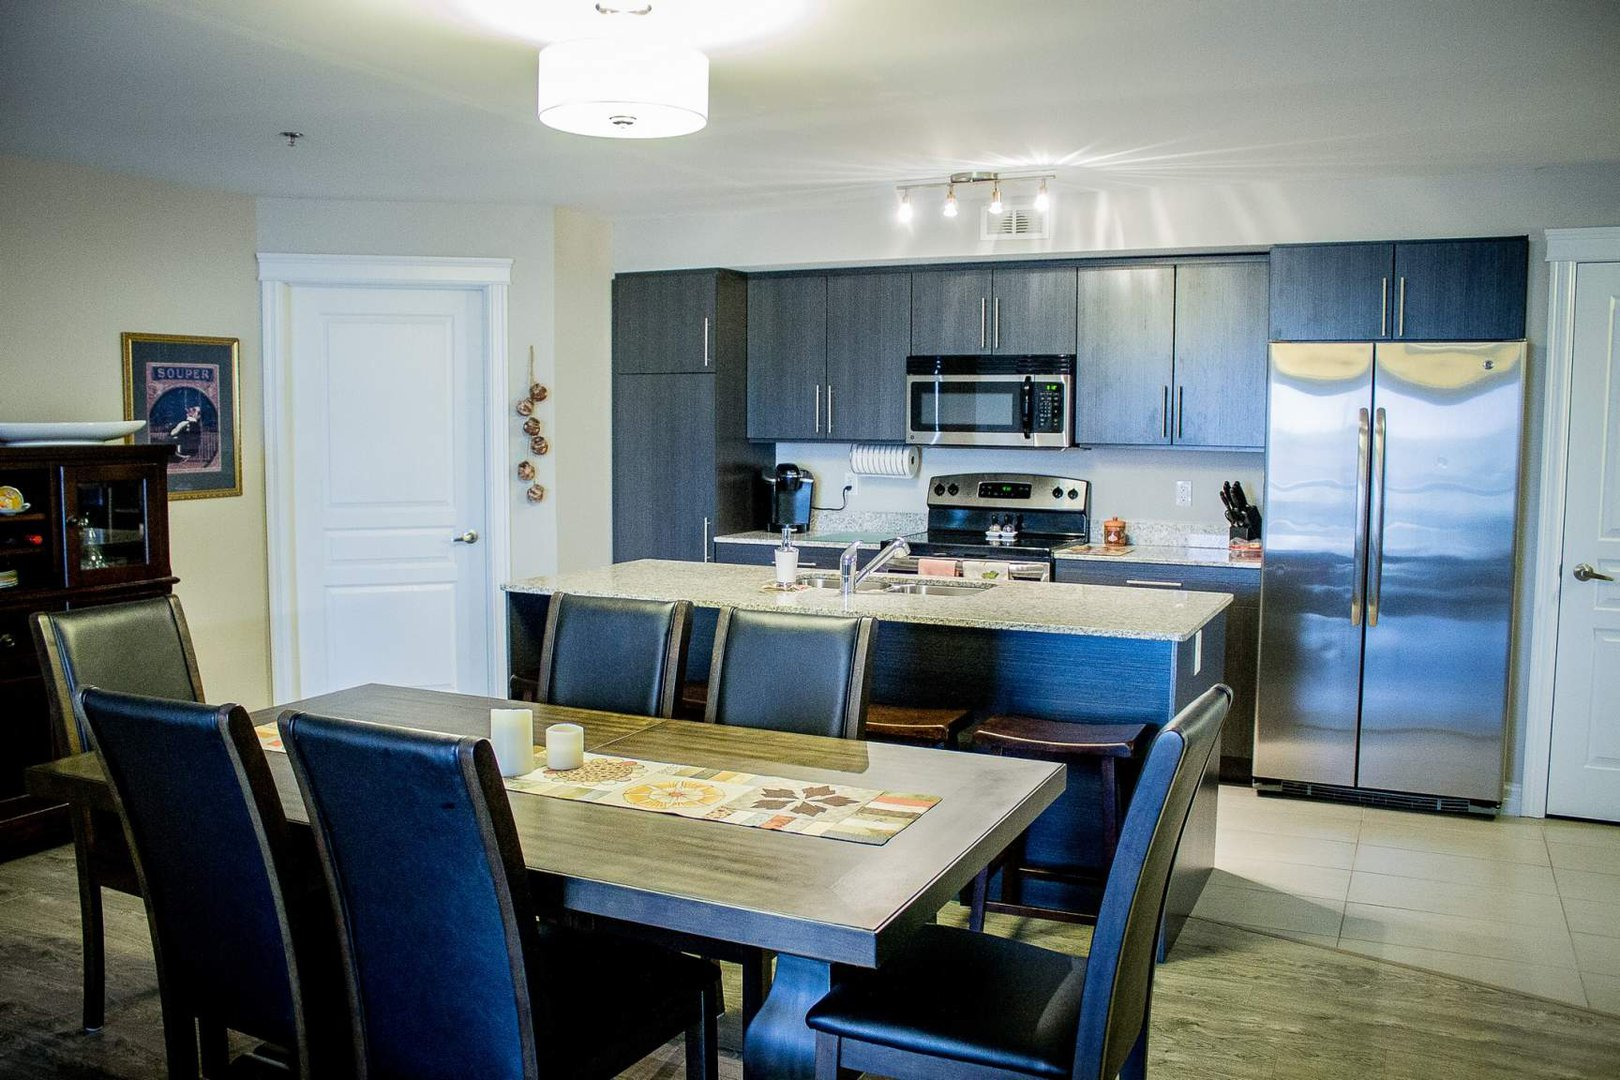 Mid-Rise-Apartment for rent at 747 Coverdale Road, Moncton, NB. This is the kitchen with hardwood floor, stainless steel, tile floor, microwave, refrigerator and oven.